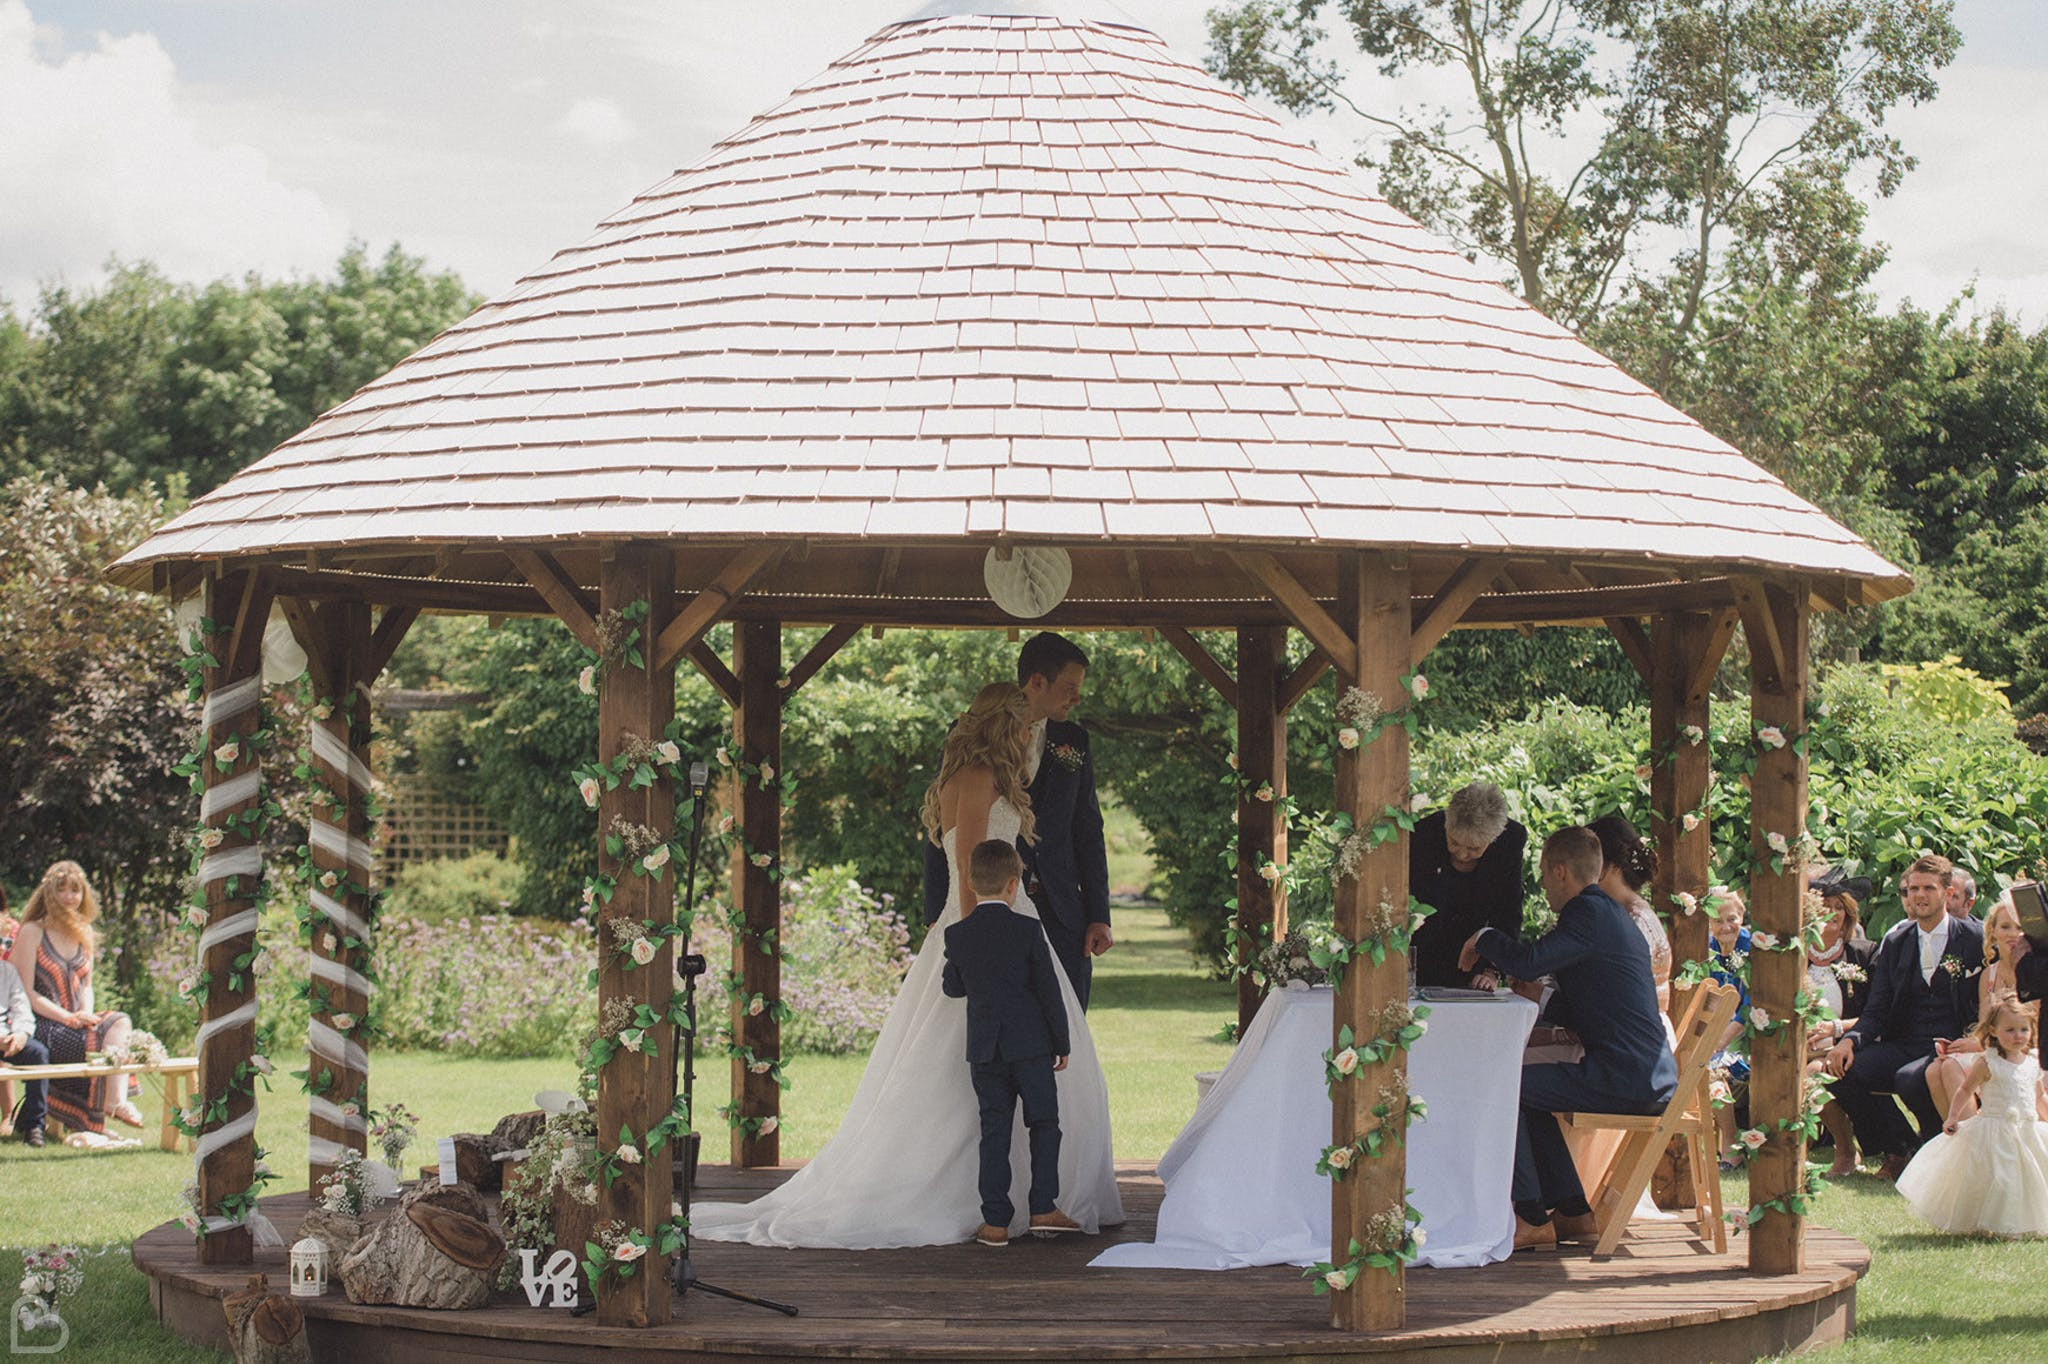 Gazeebo at The Garden, a woodlands wedding venue in Kent.